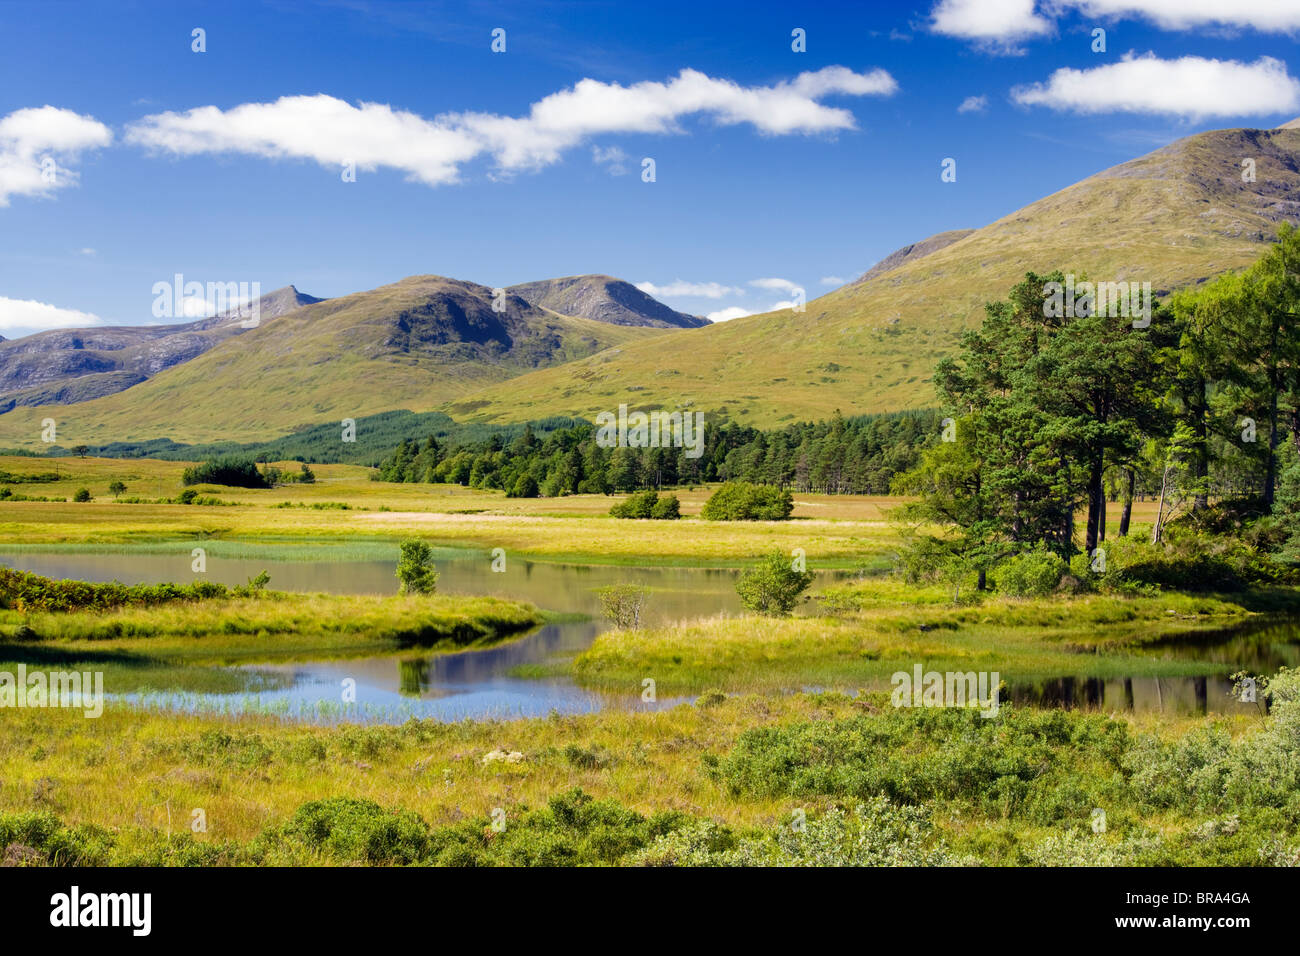 Loch Tulla, Black Mount, Argyll, Scotland, UK. - Stock Image